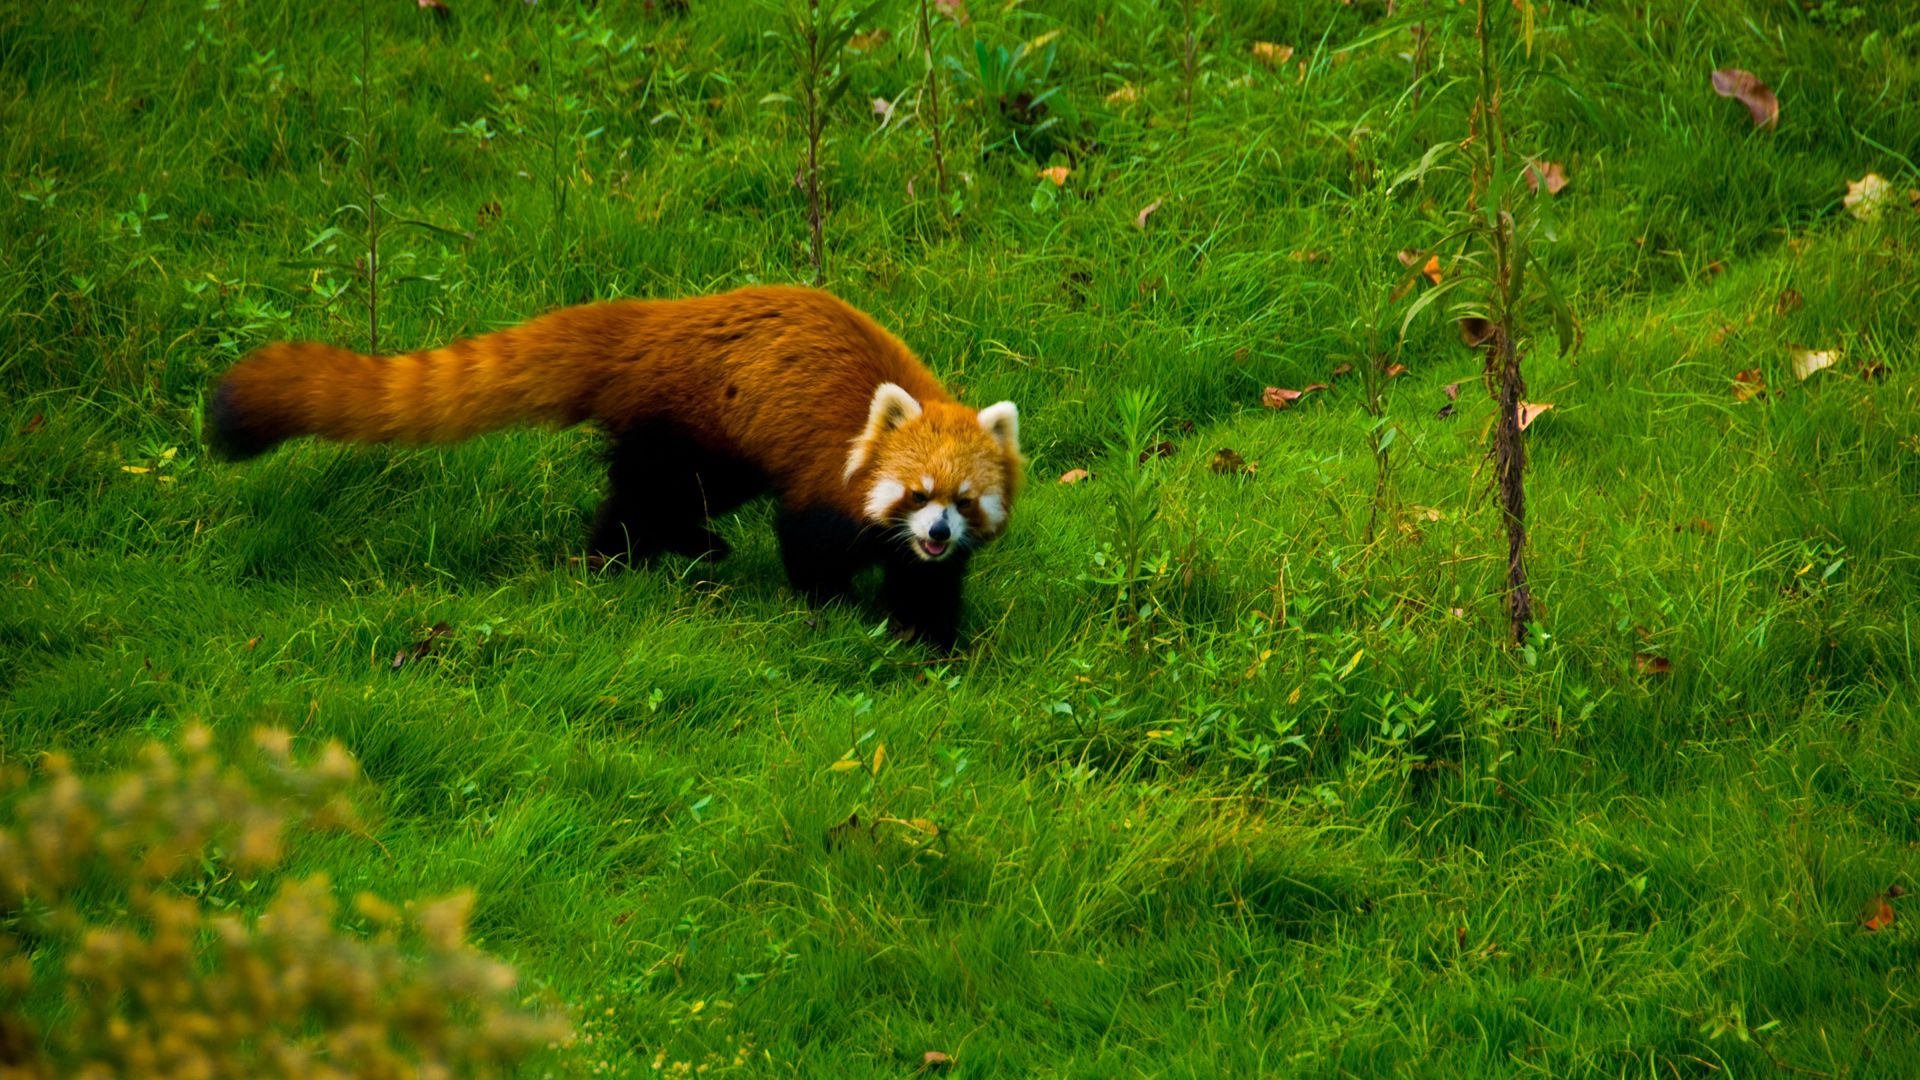 105012 Screensavers and Wallpapers Stroll for phone. Download Animals, Grass, Stroll, Red Panda pictures for free